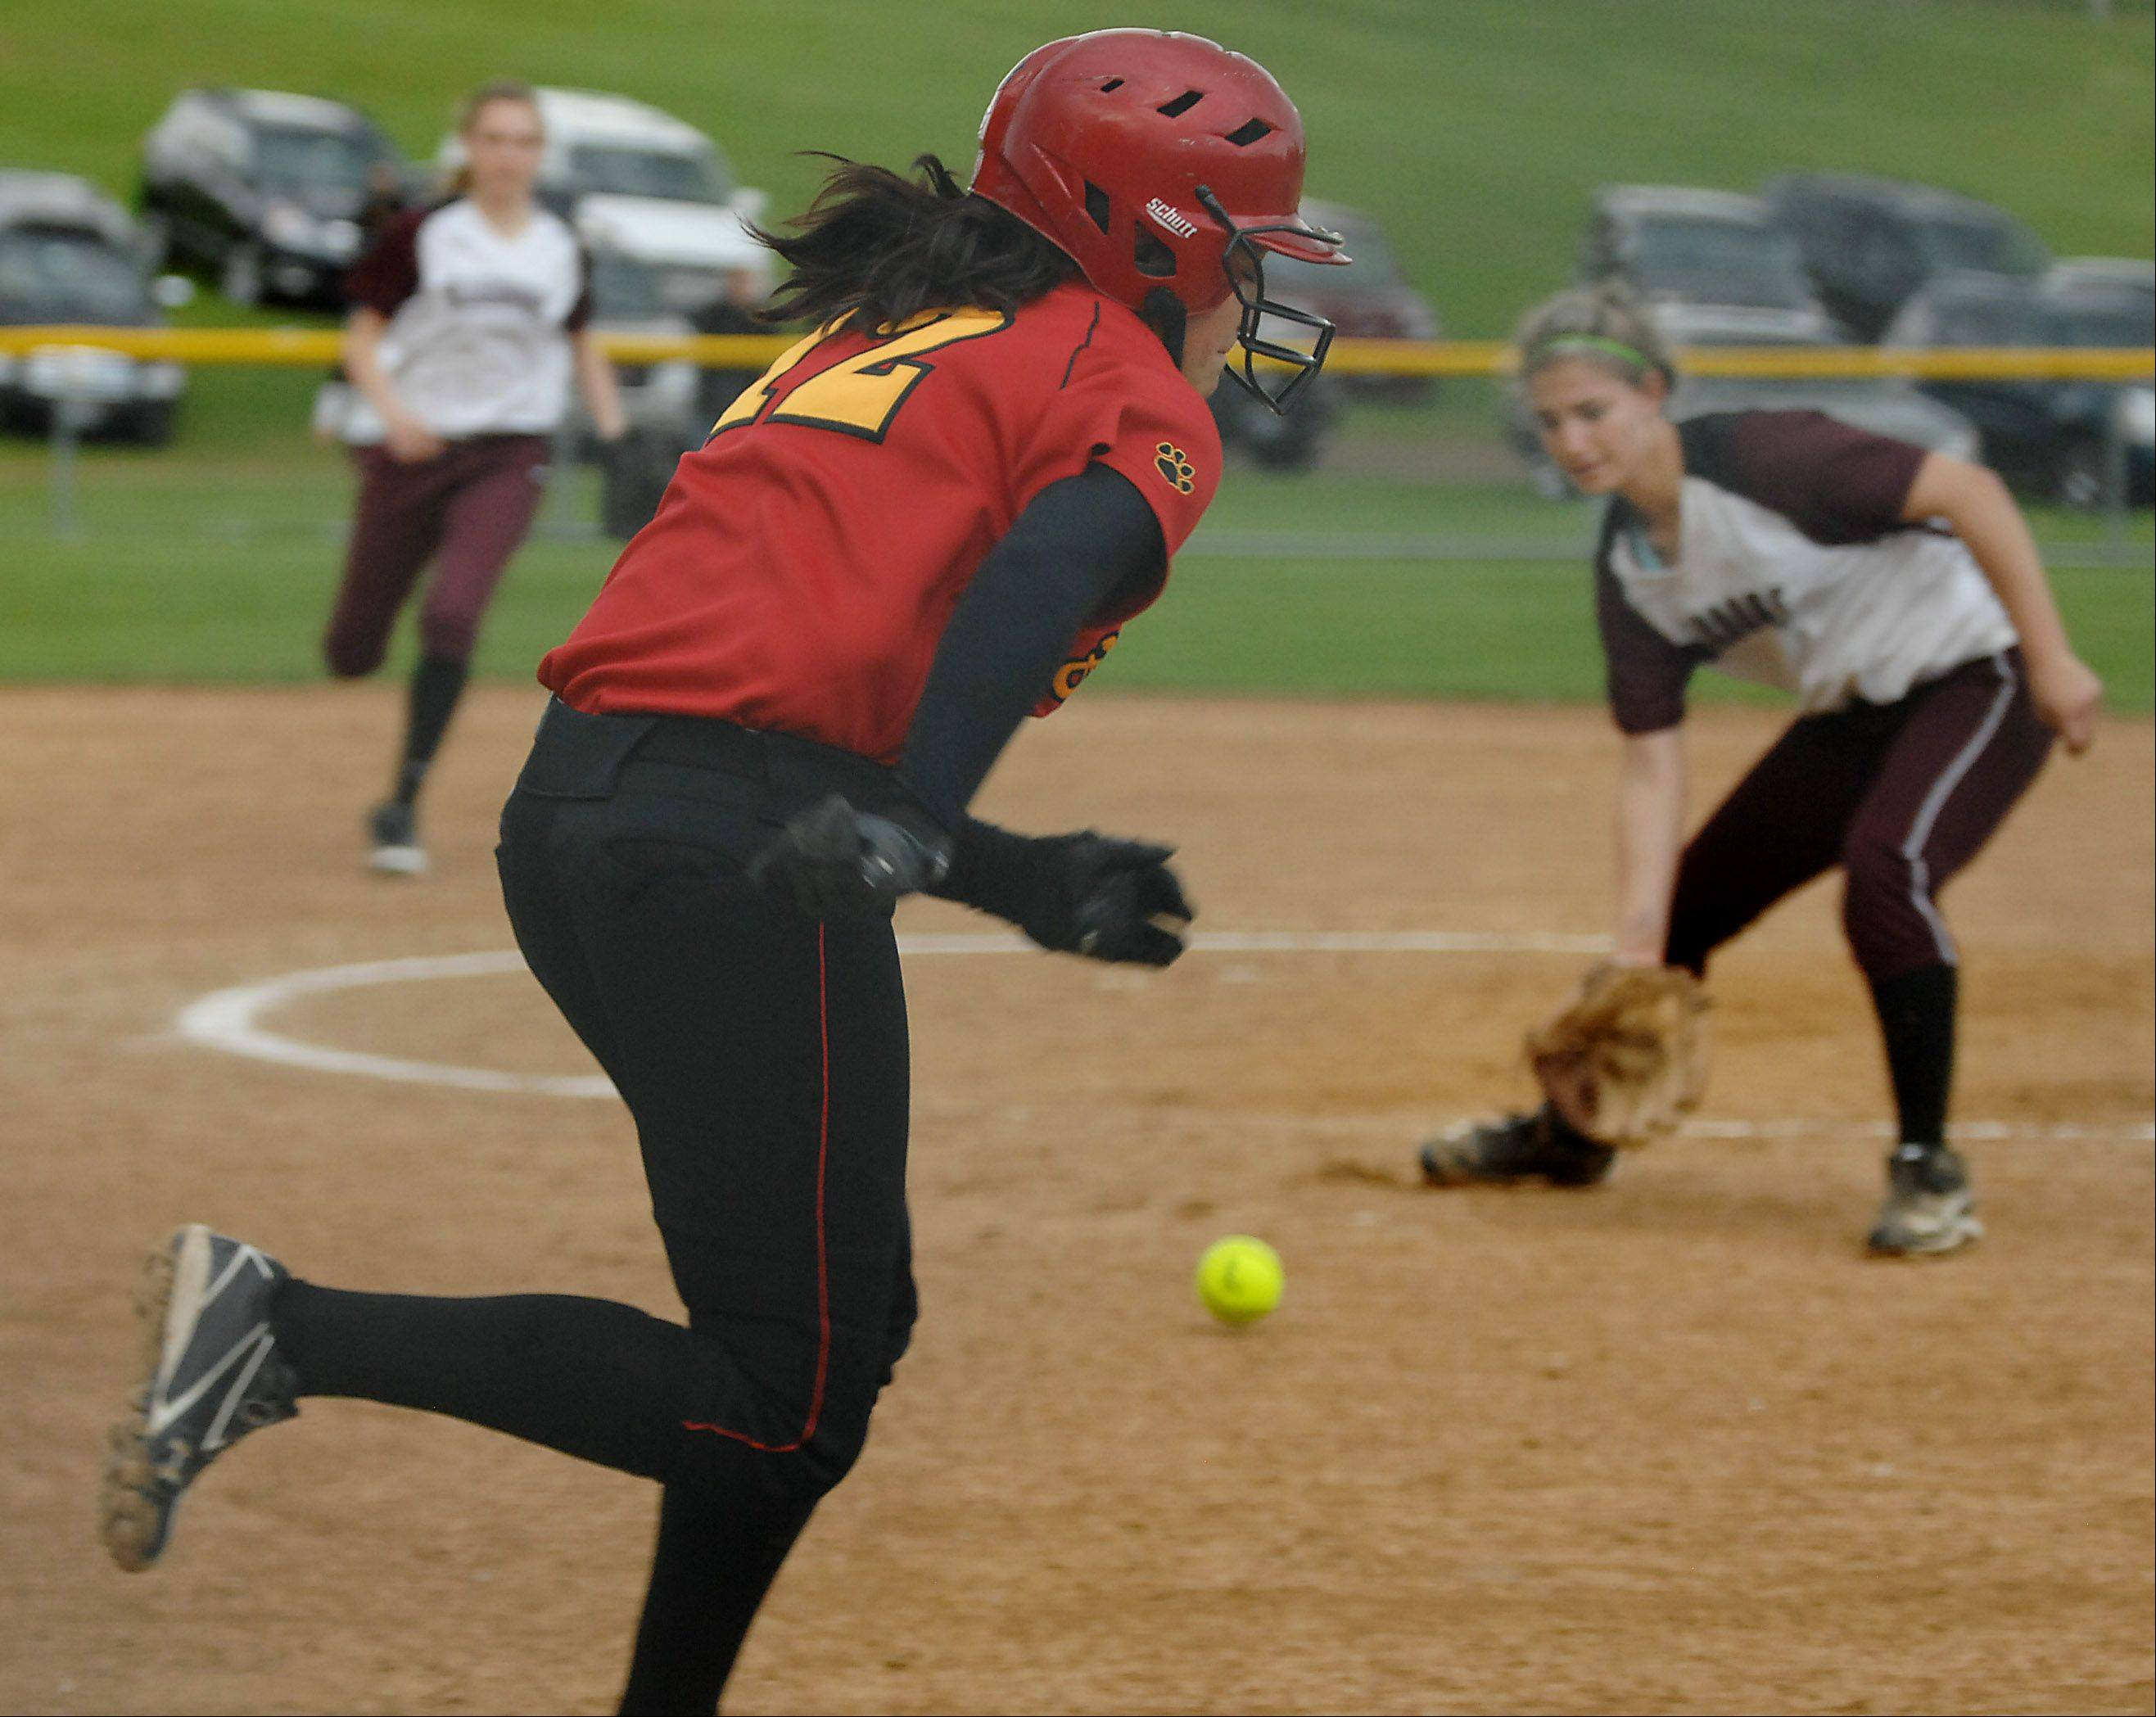 Batavia's Sami Villarreal tries to beat the play by Elgin pitcher Hannah Perryman who fields her bunt in the sixth inning Wednesday in Elgin. She was thrown out.